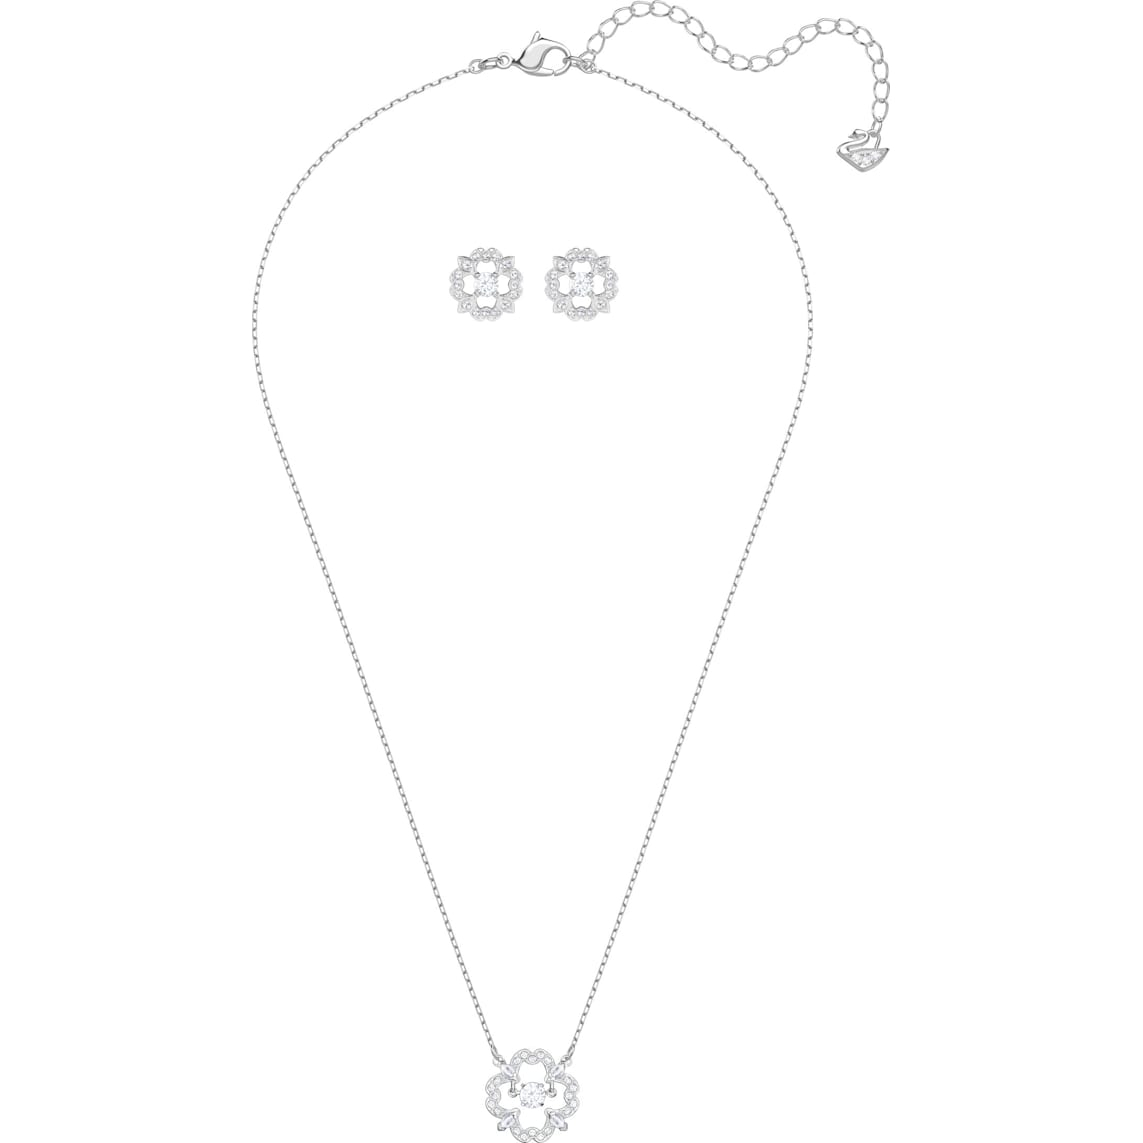 Sparkling Dance Flower Set, White, Rhodium Plated Within Best And Newest Sparkling Daisy Flower Locket Element Necklaces (Gallery 23 of 25)